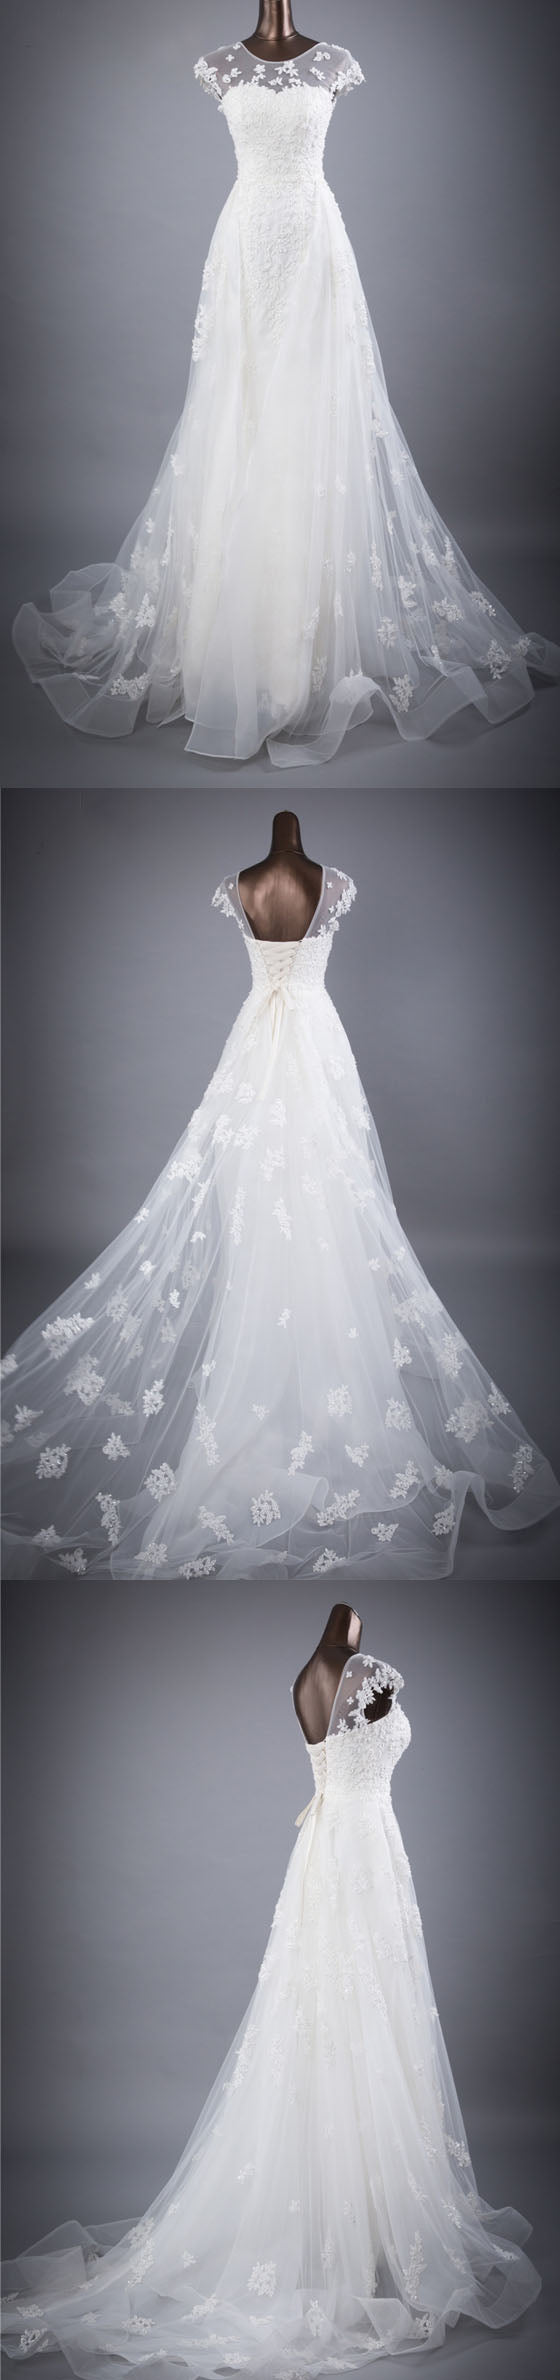 Cap Sleeves Charming Affordable Lace Up Back Long Wedding Dresses, BGW002